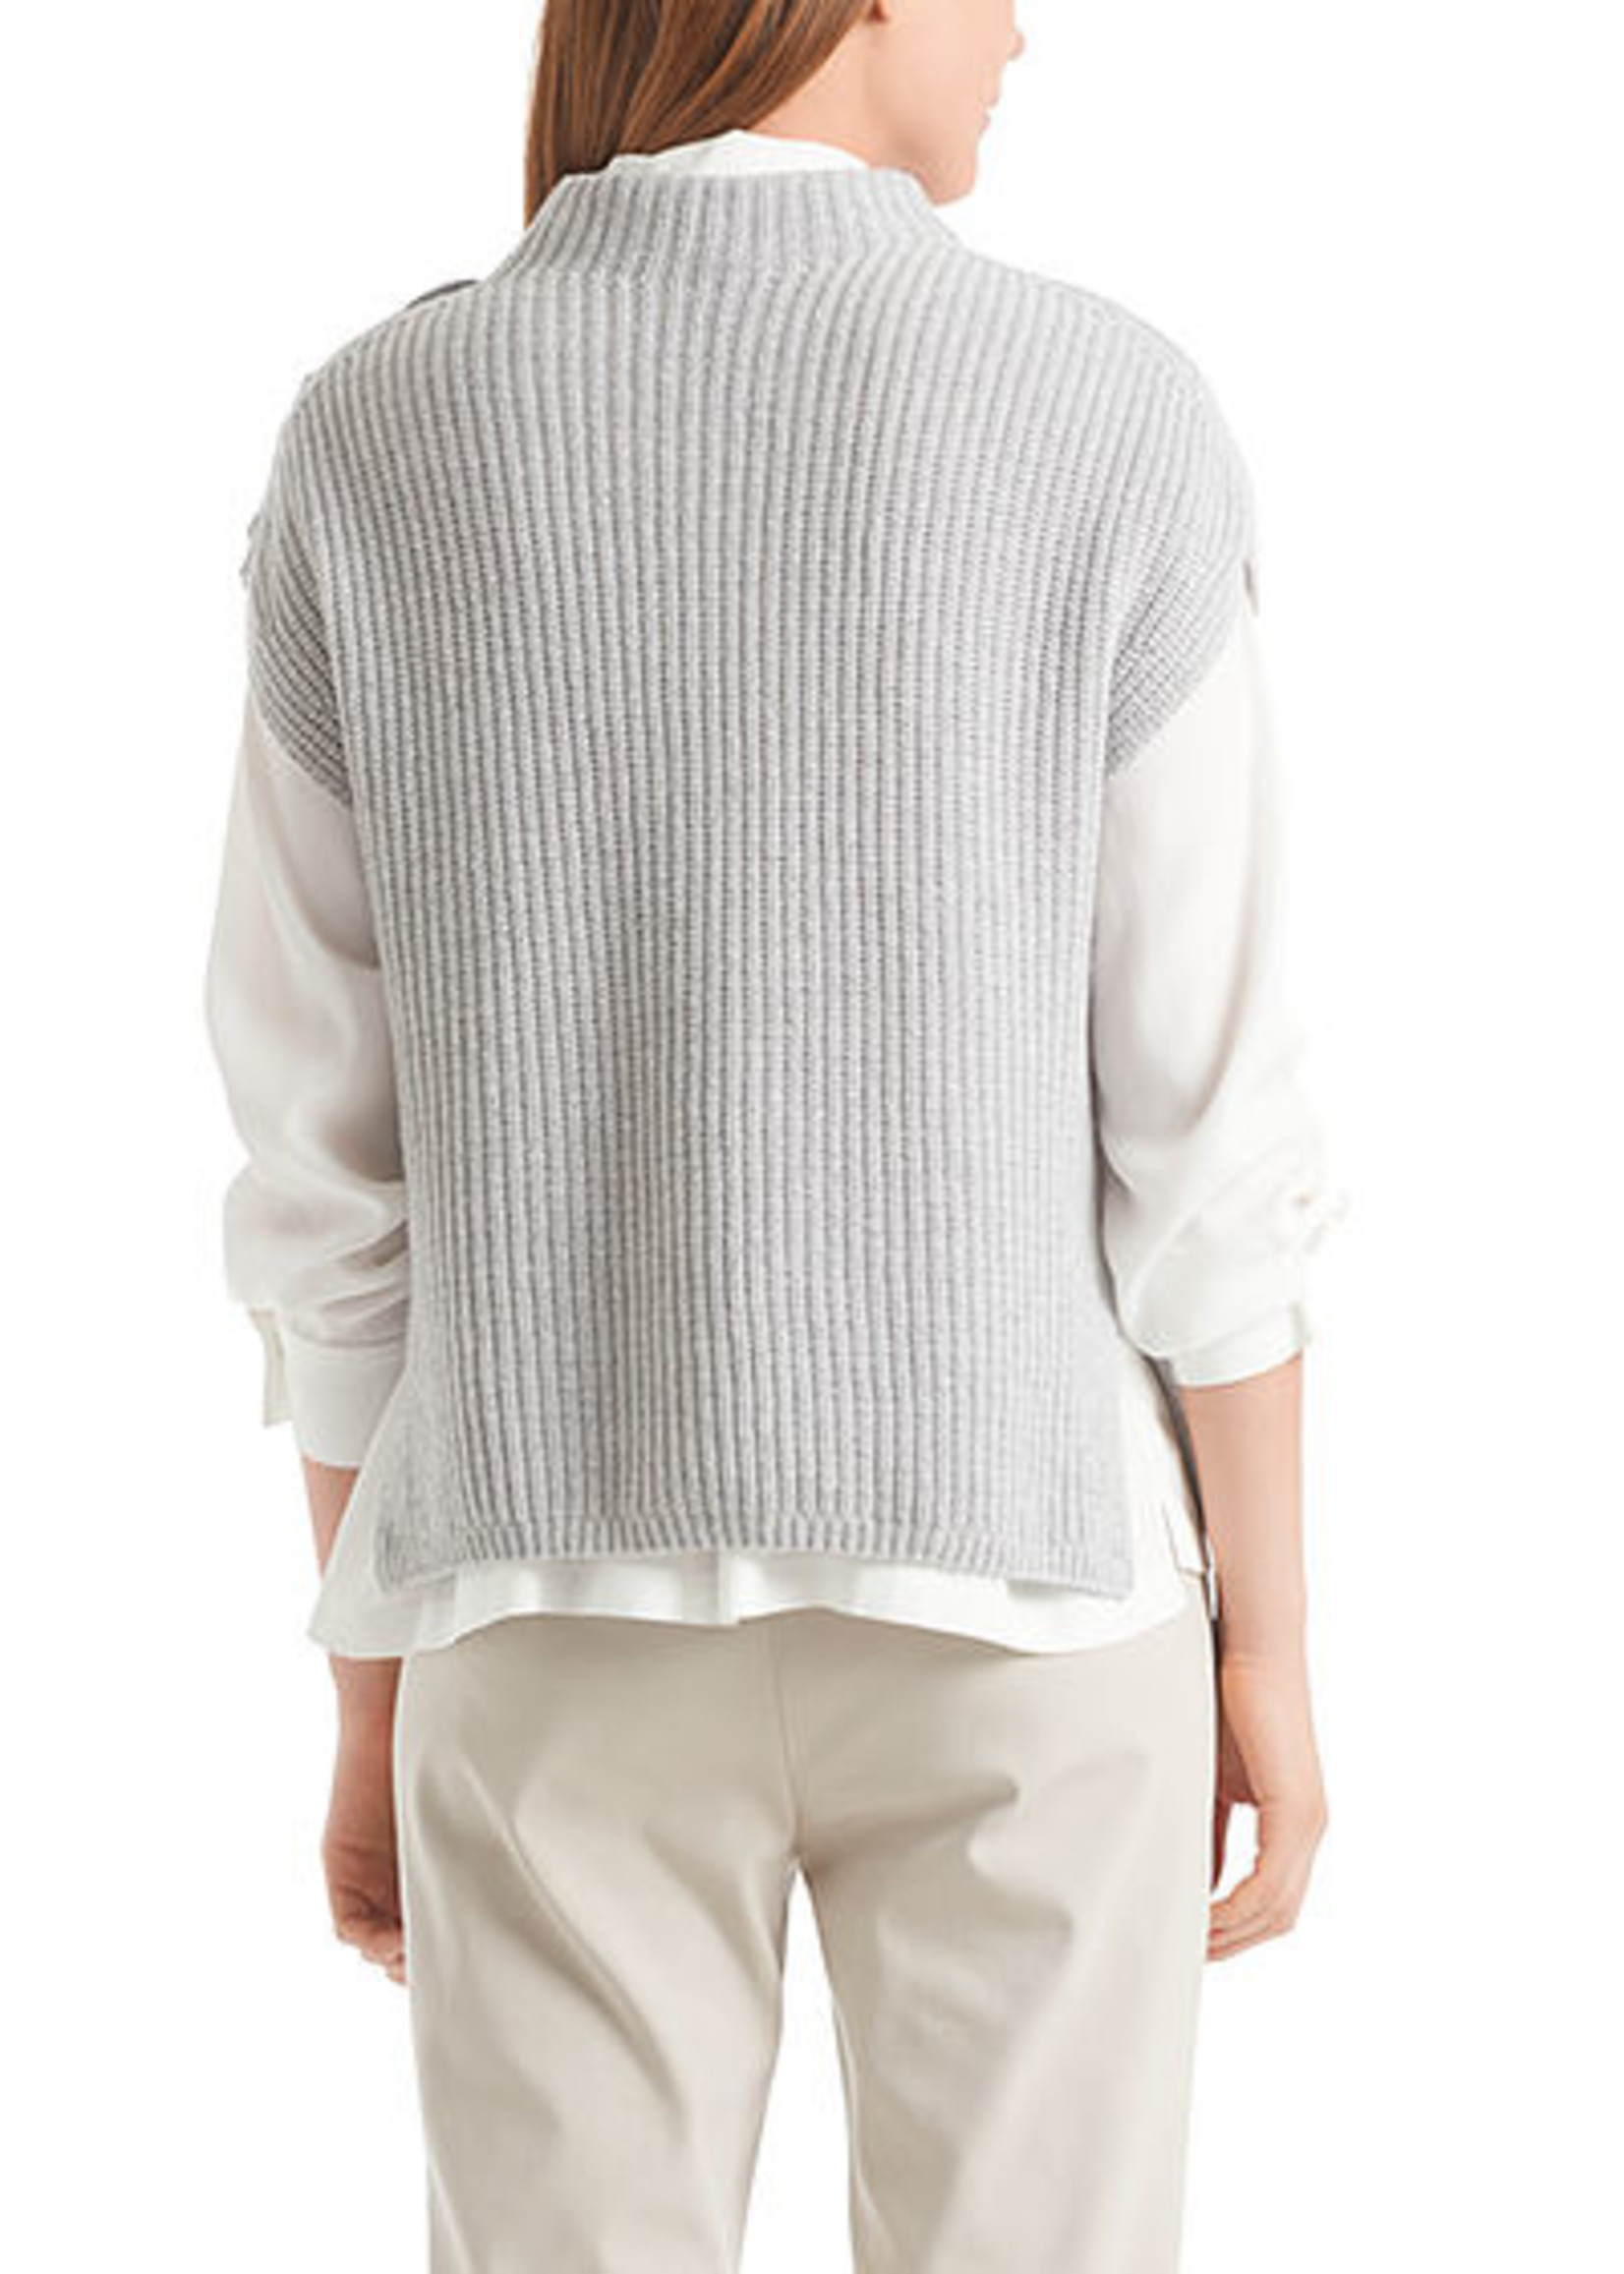 Marccain Sports Top RS 61.02 M06 silver grey